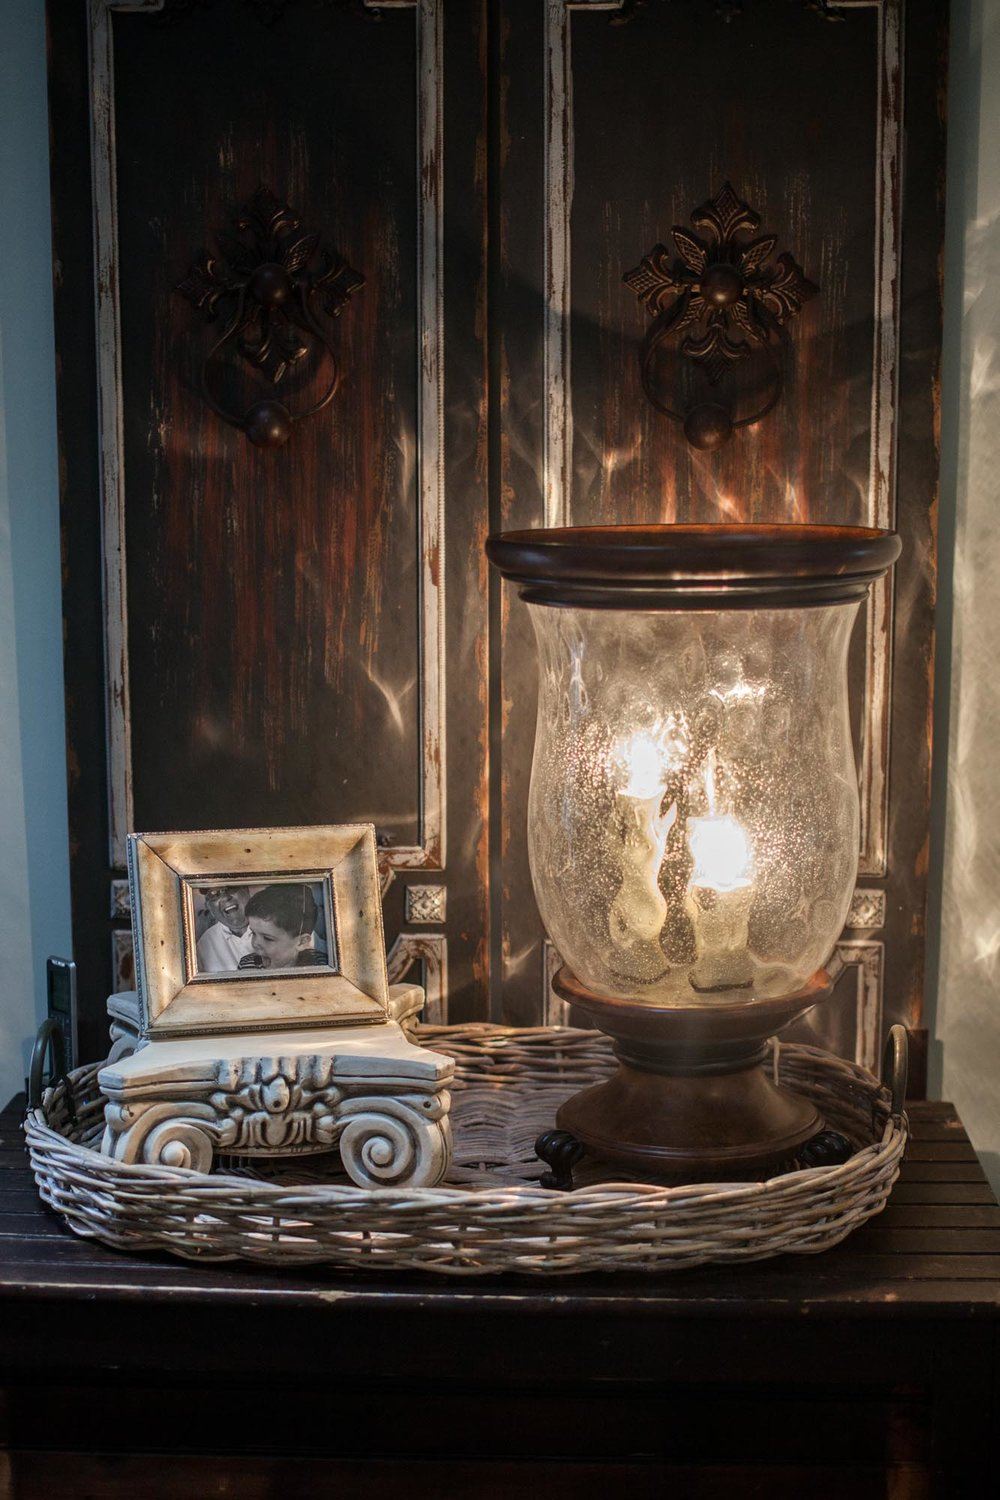 Antique console with gas lamp and framed picture